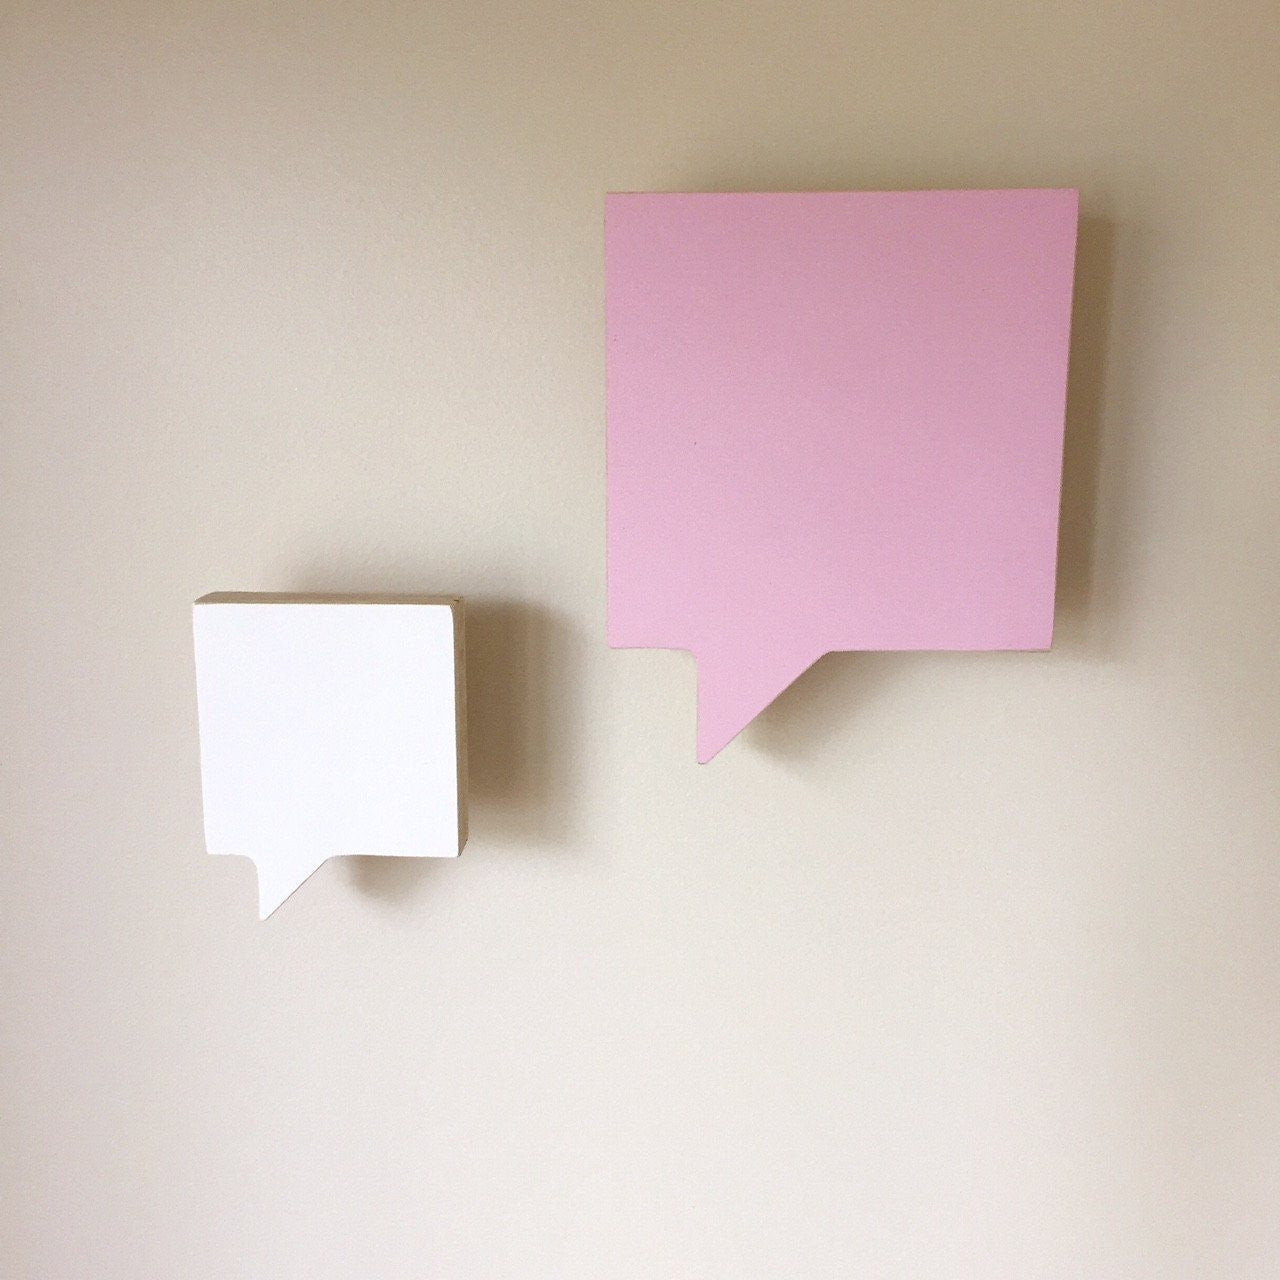 Speech Bubble Square Wall Hook - Pink & White (Set of 2) - Wiggles Piggles  - 1